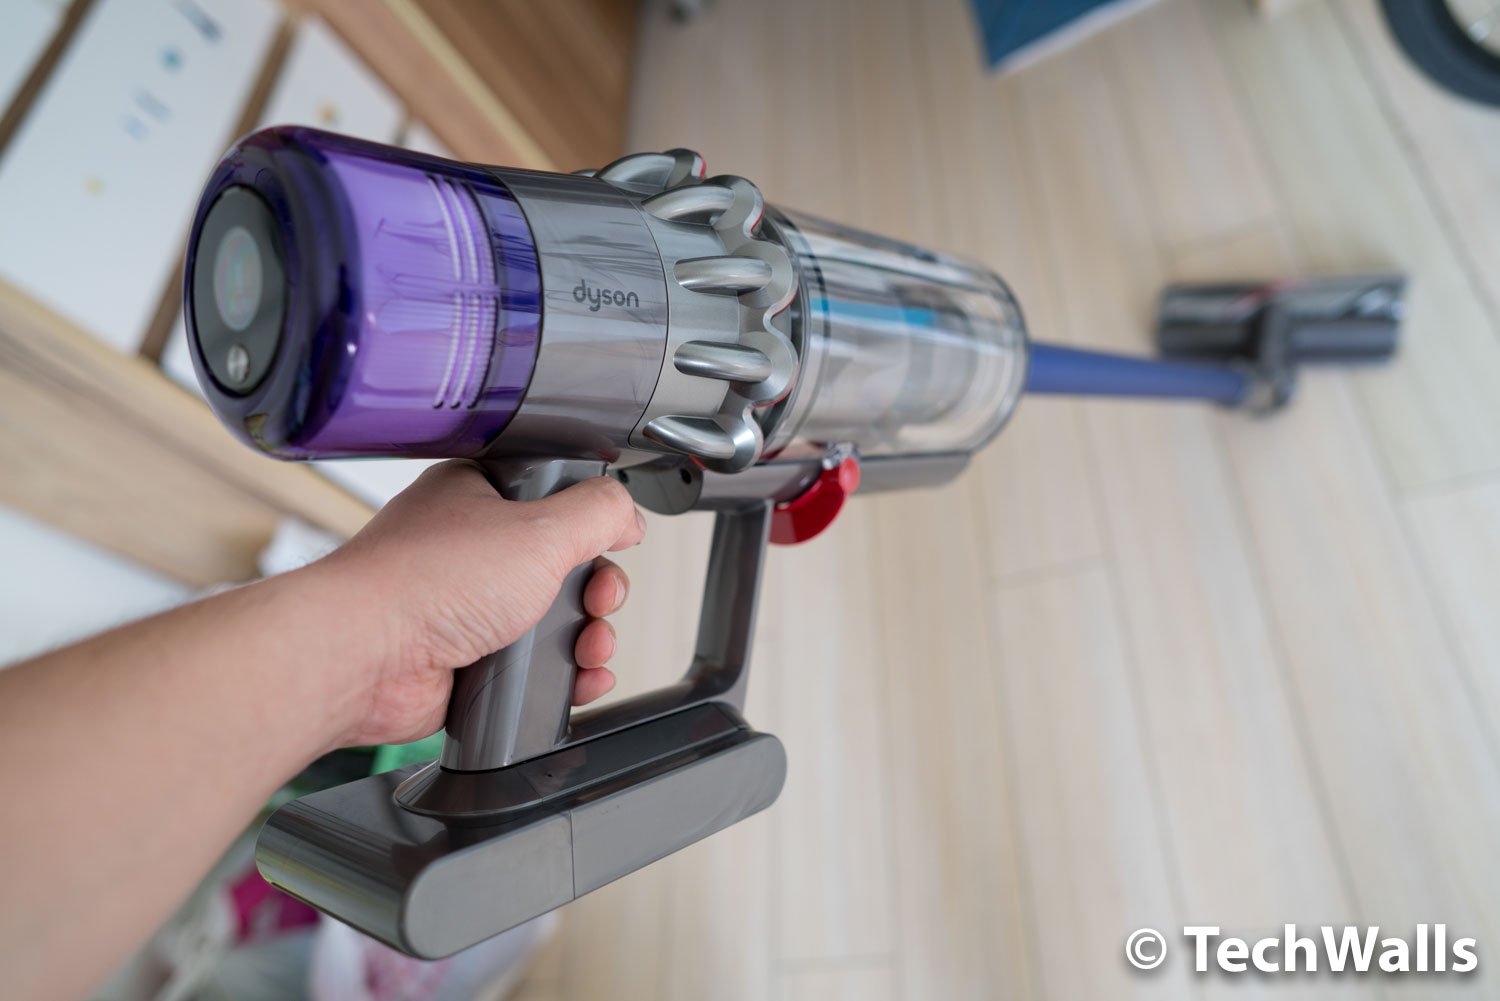 Dyson V11 Torque Drive Cordless Vacuum Cleaner Review